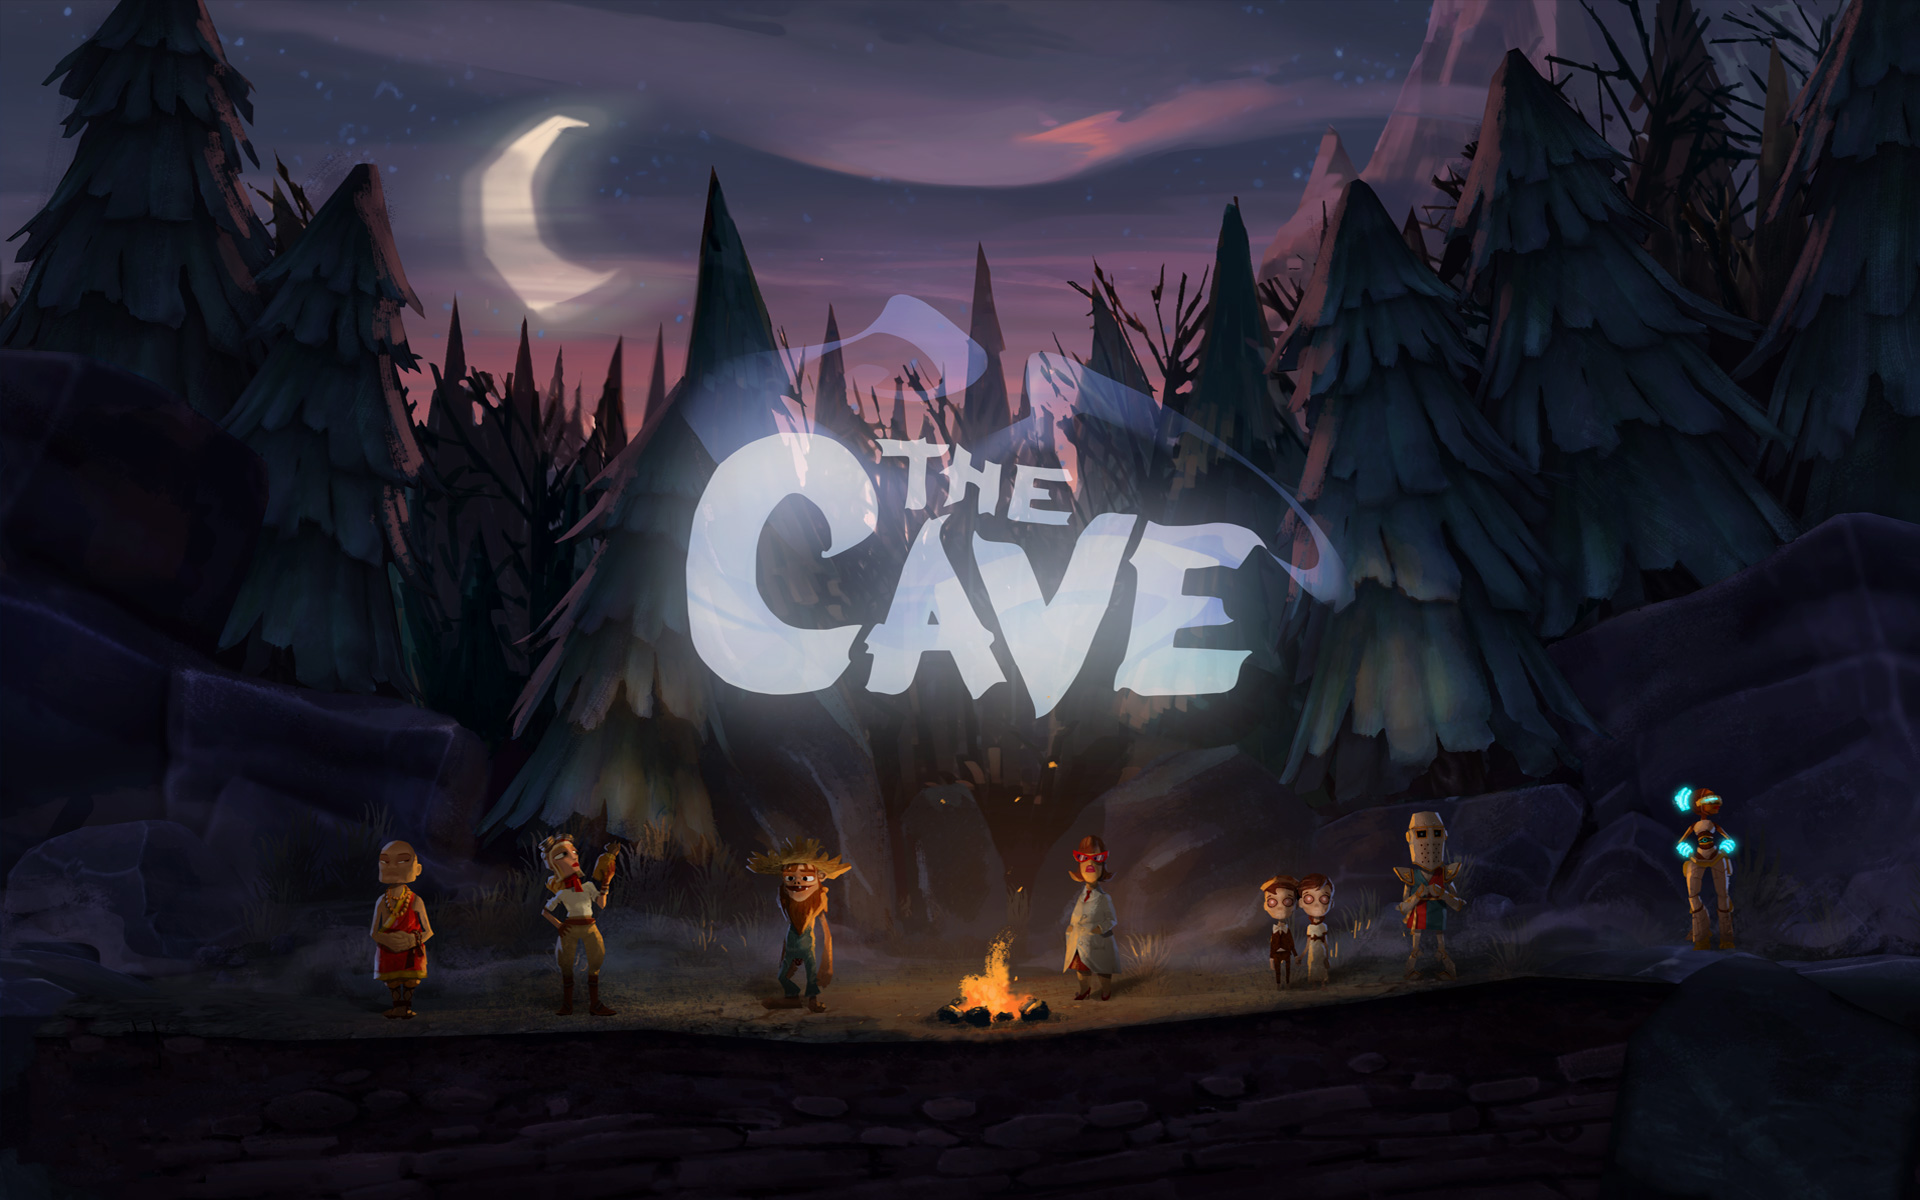 Free The Cave Wallpaper in 1920x1200